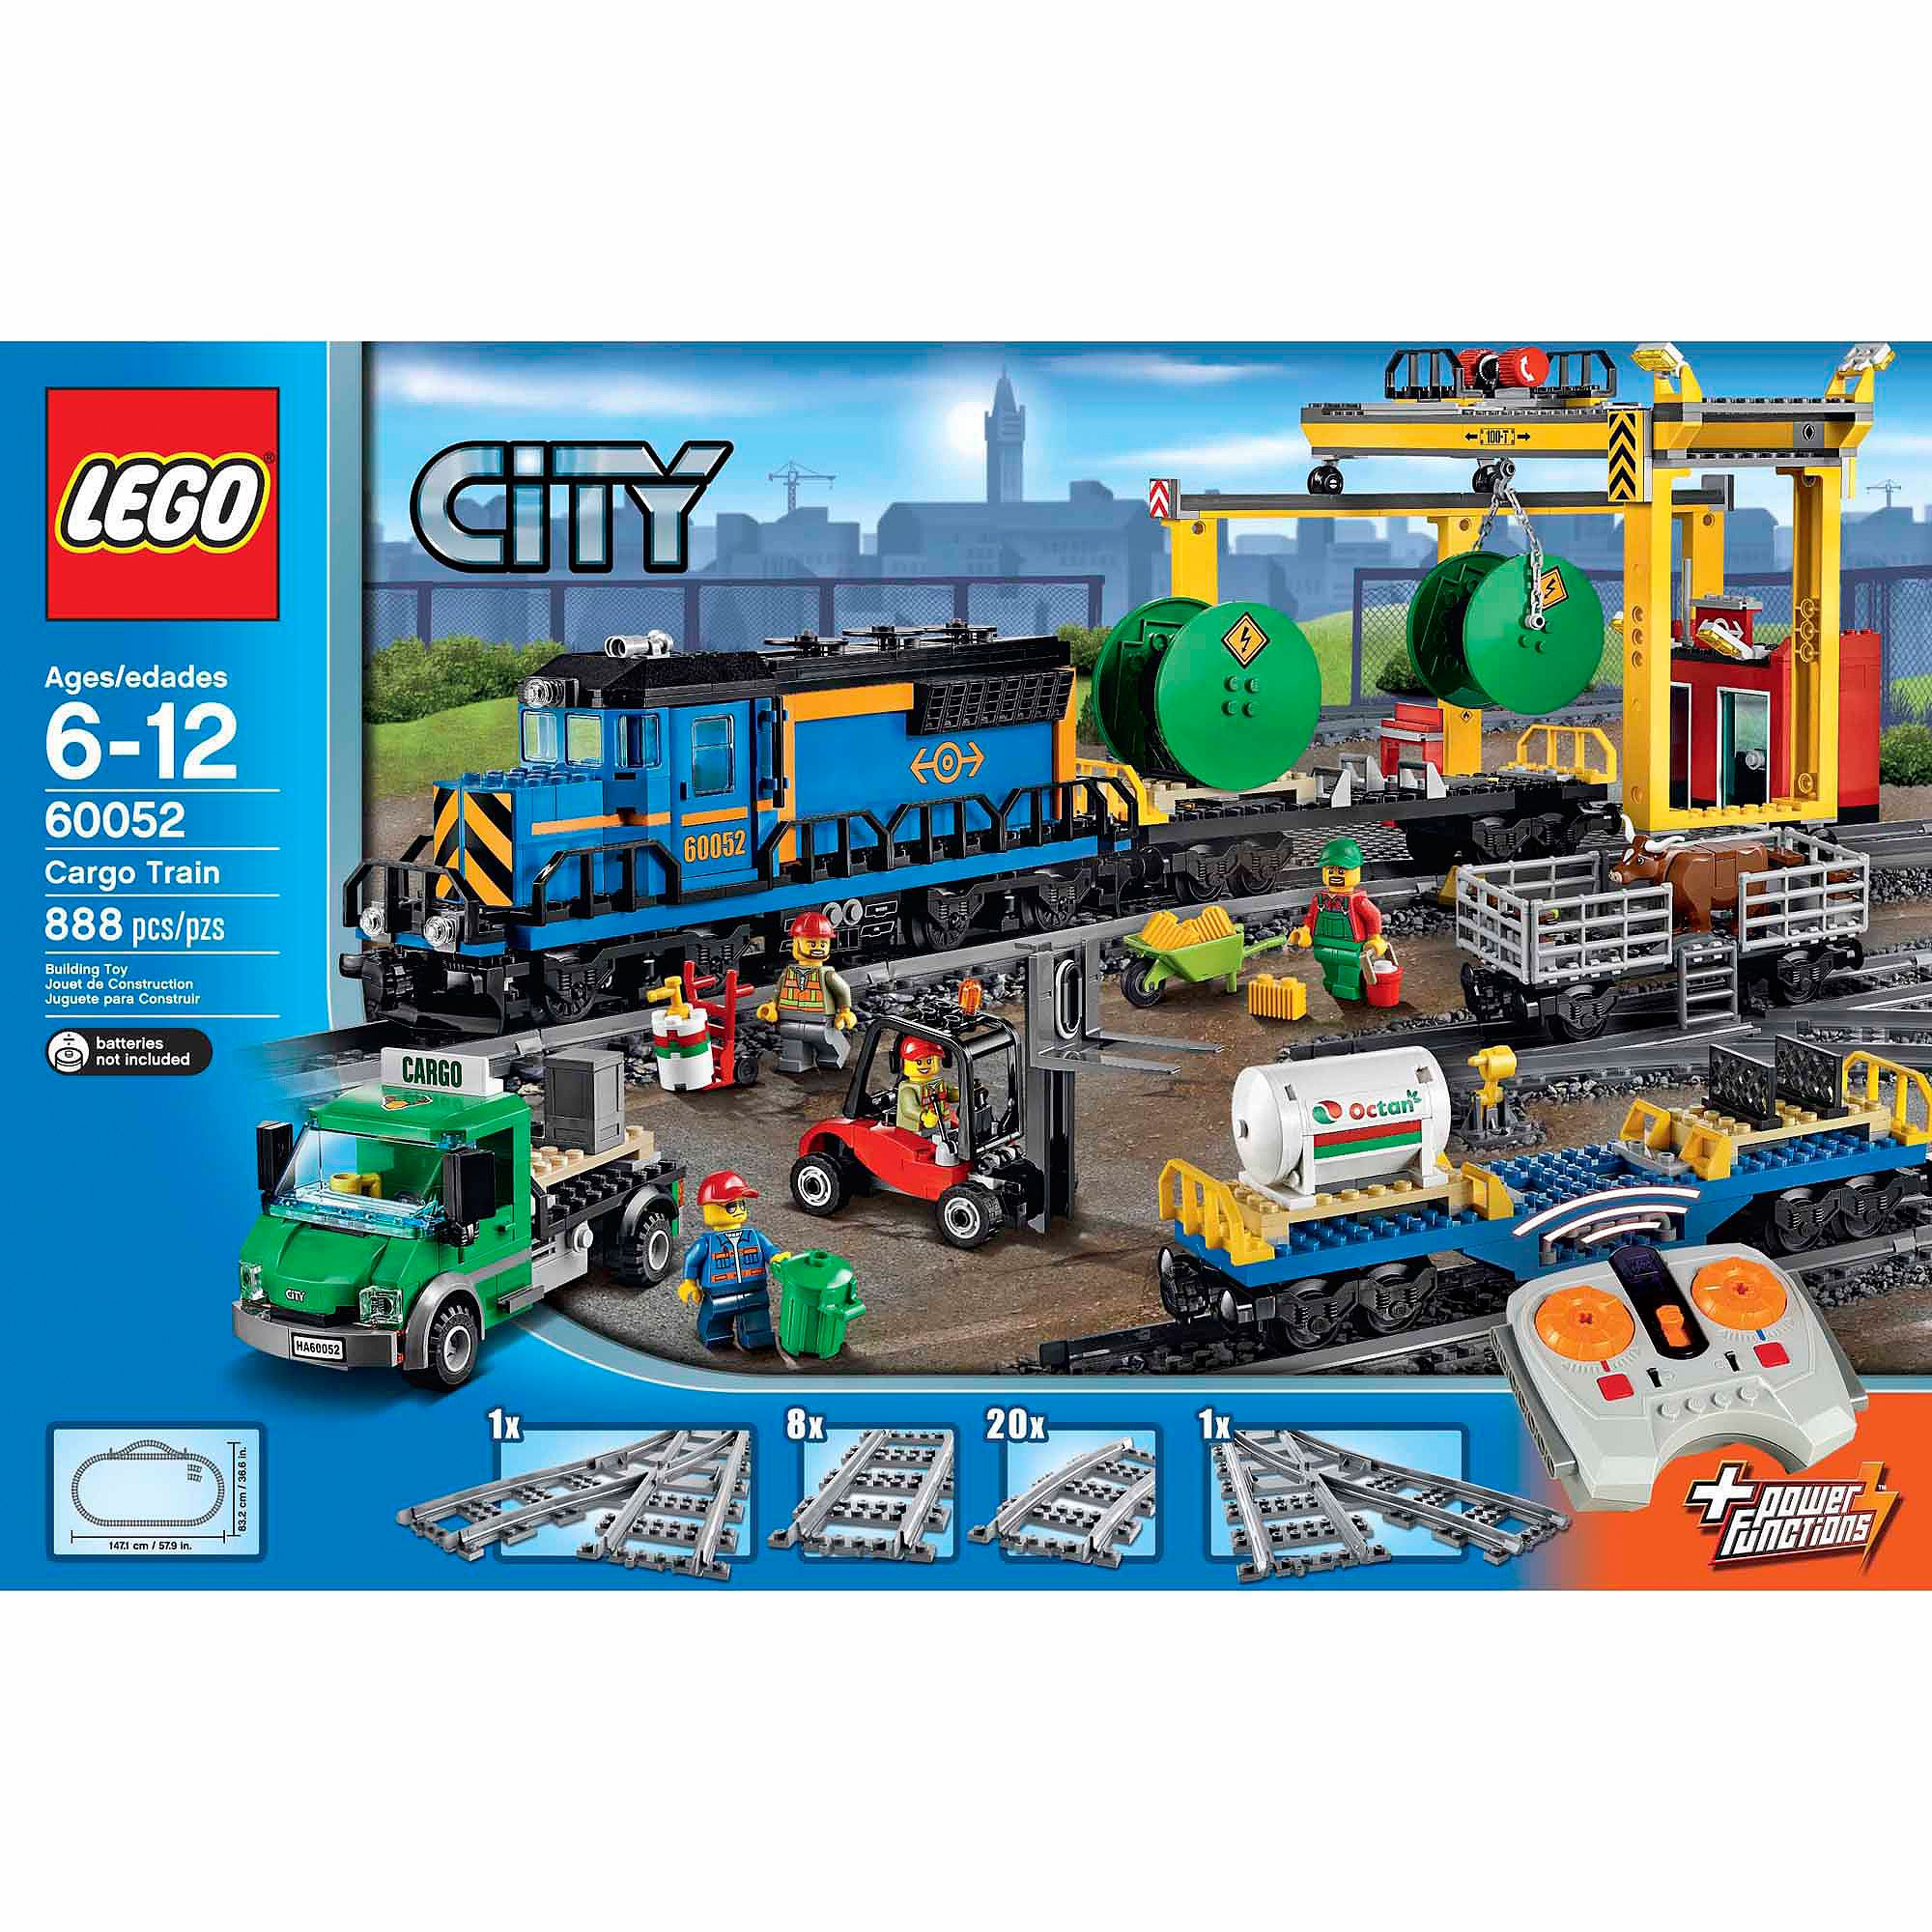 Walmart Toys For Boys Legos : Find and compare more children toys at http extrabigfoot